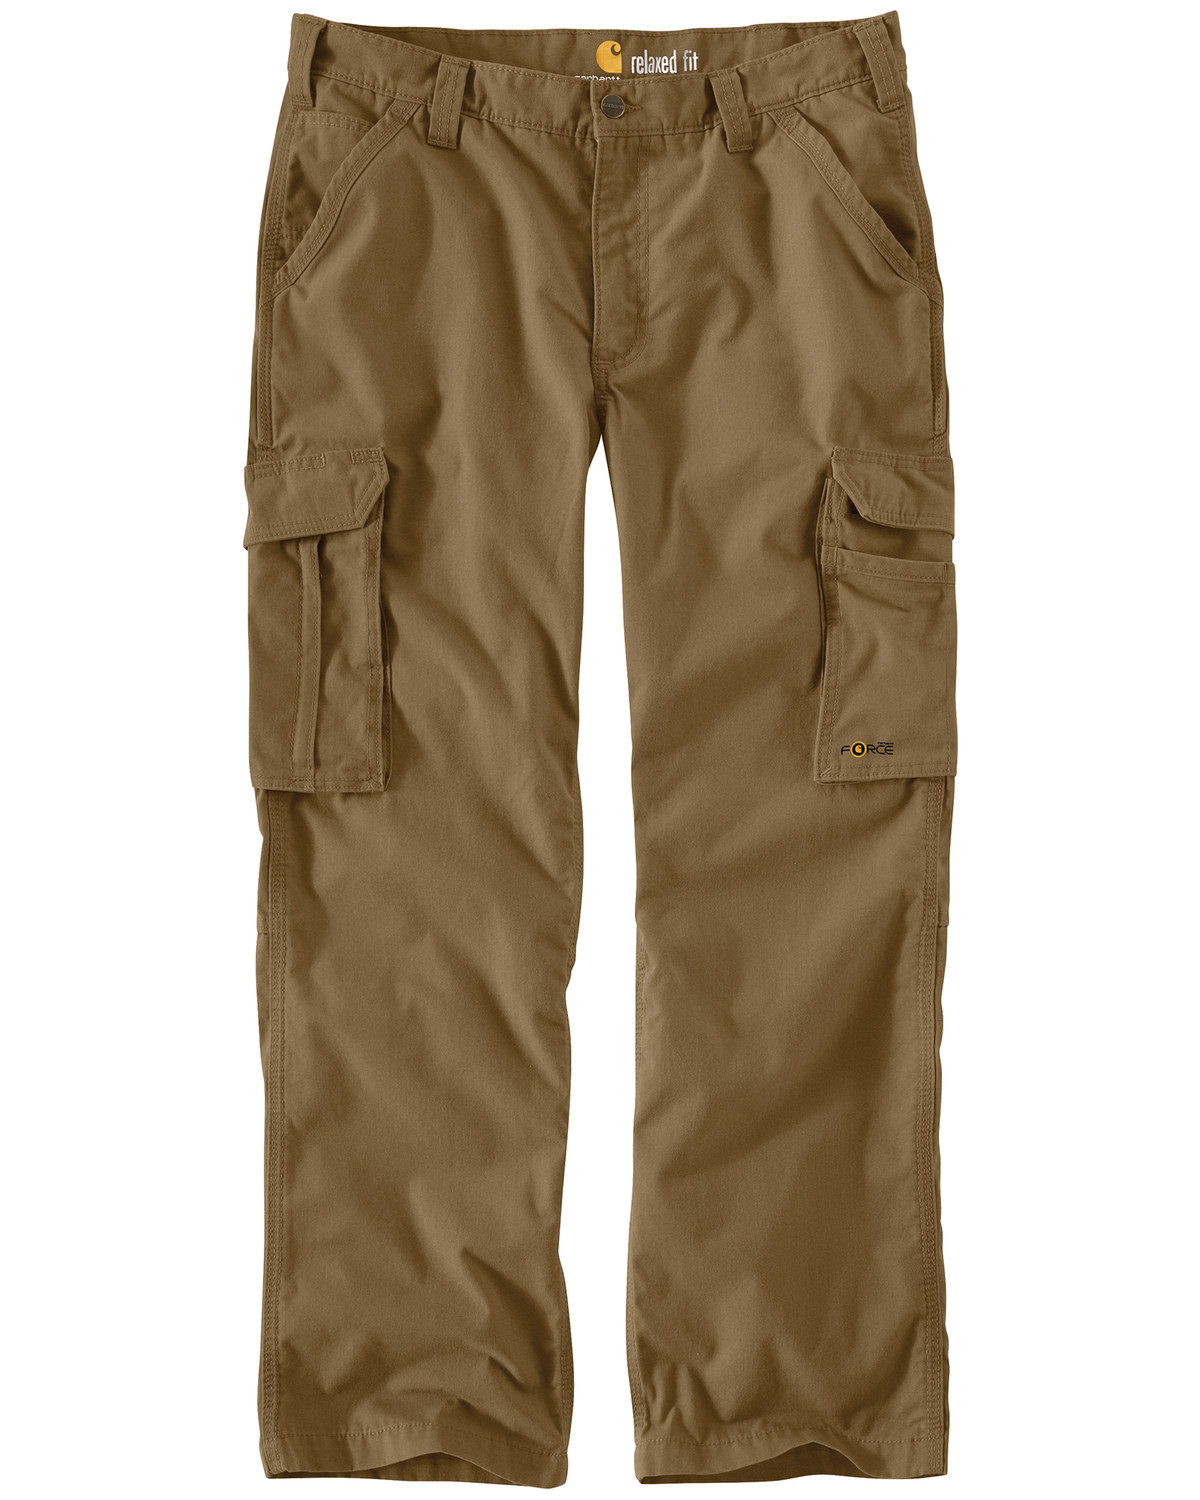 incredible prices speical offer outlet online Carhartt Men's Force Tappen Cargo Pants